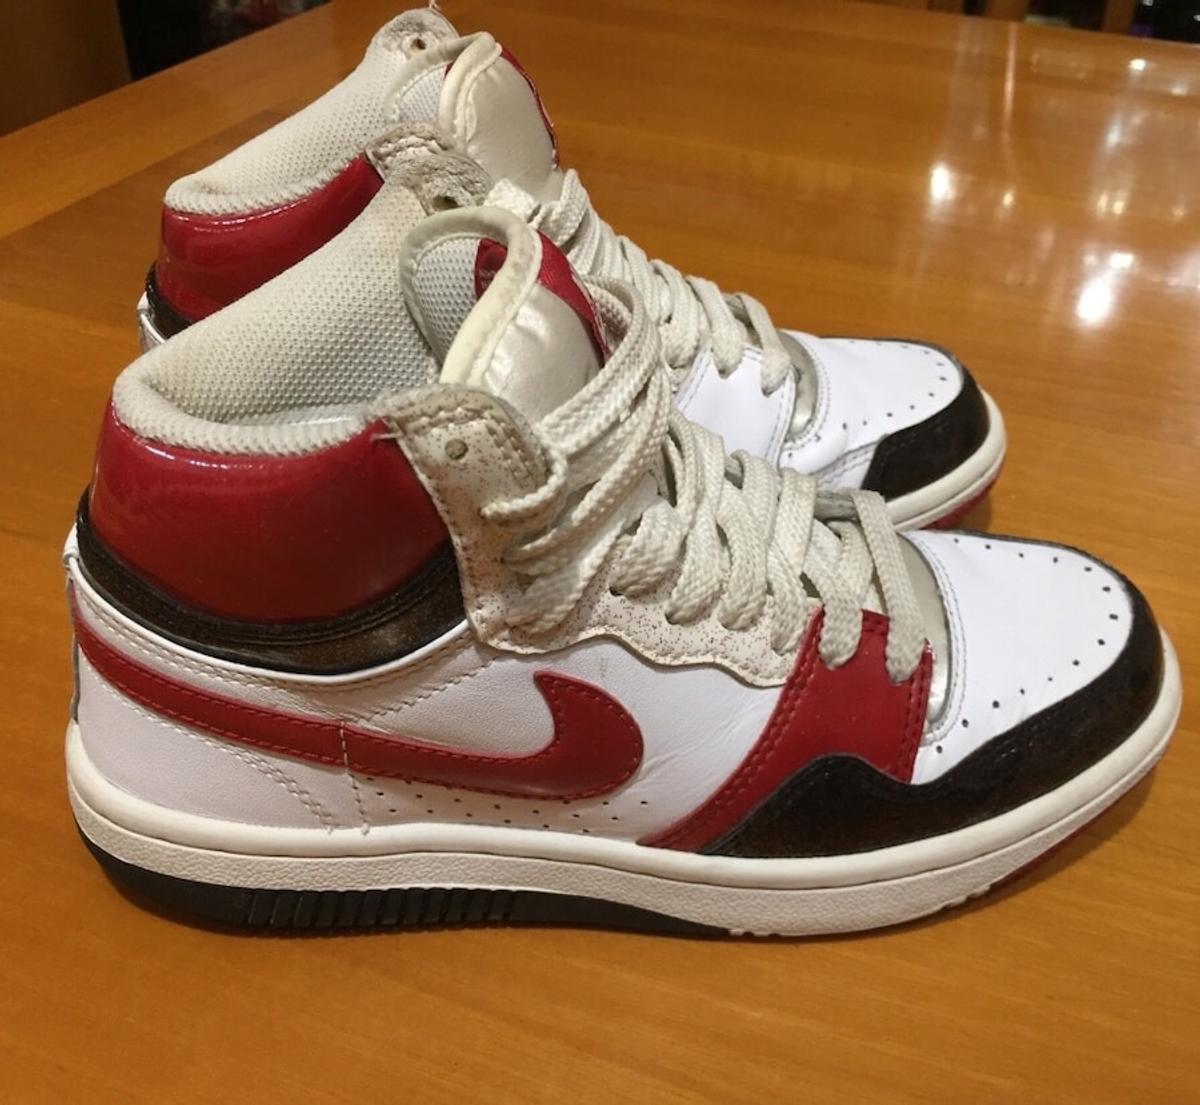 nike court force donna numero 36 5 in 41017 ravarino for 15 00 for sale shpock nike court force donna numero 36 5 in